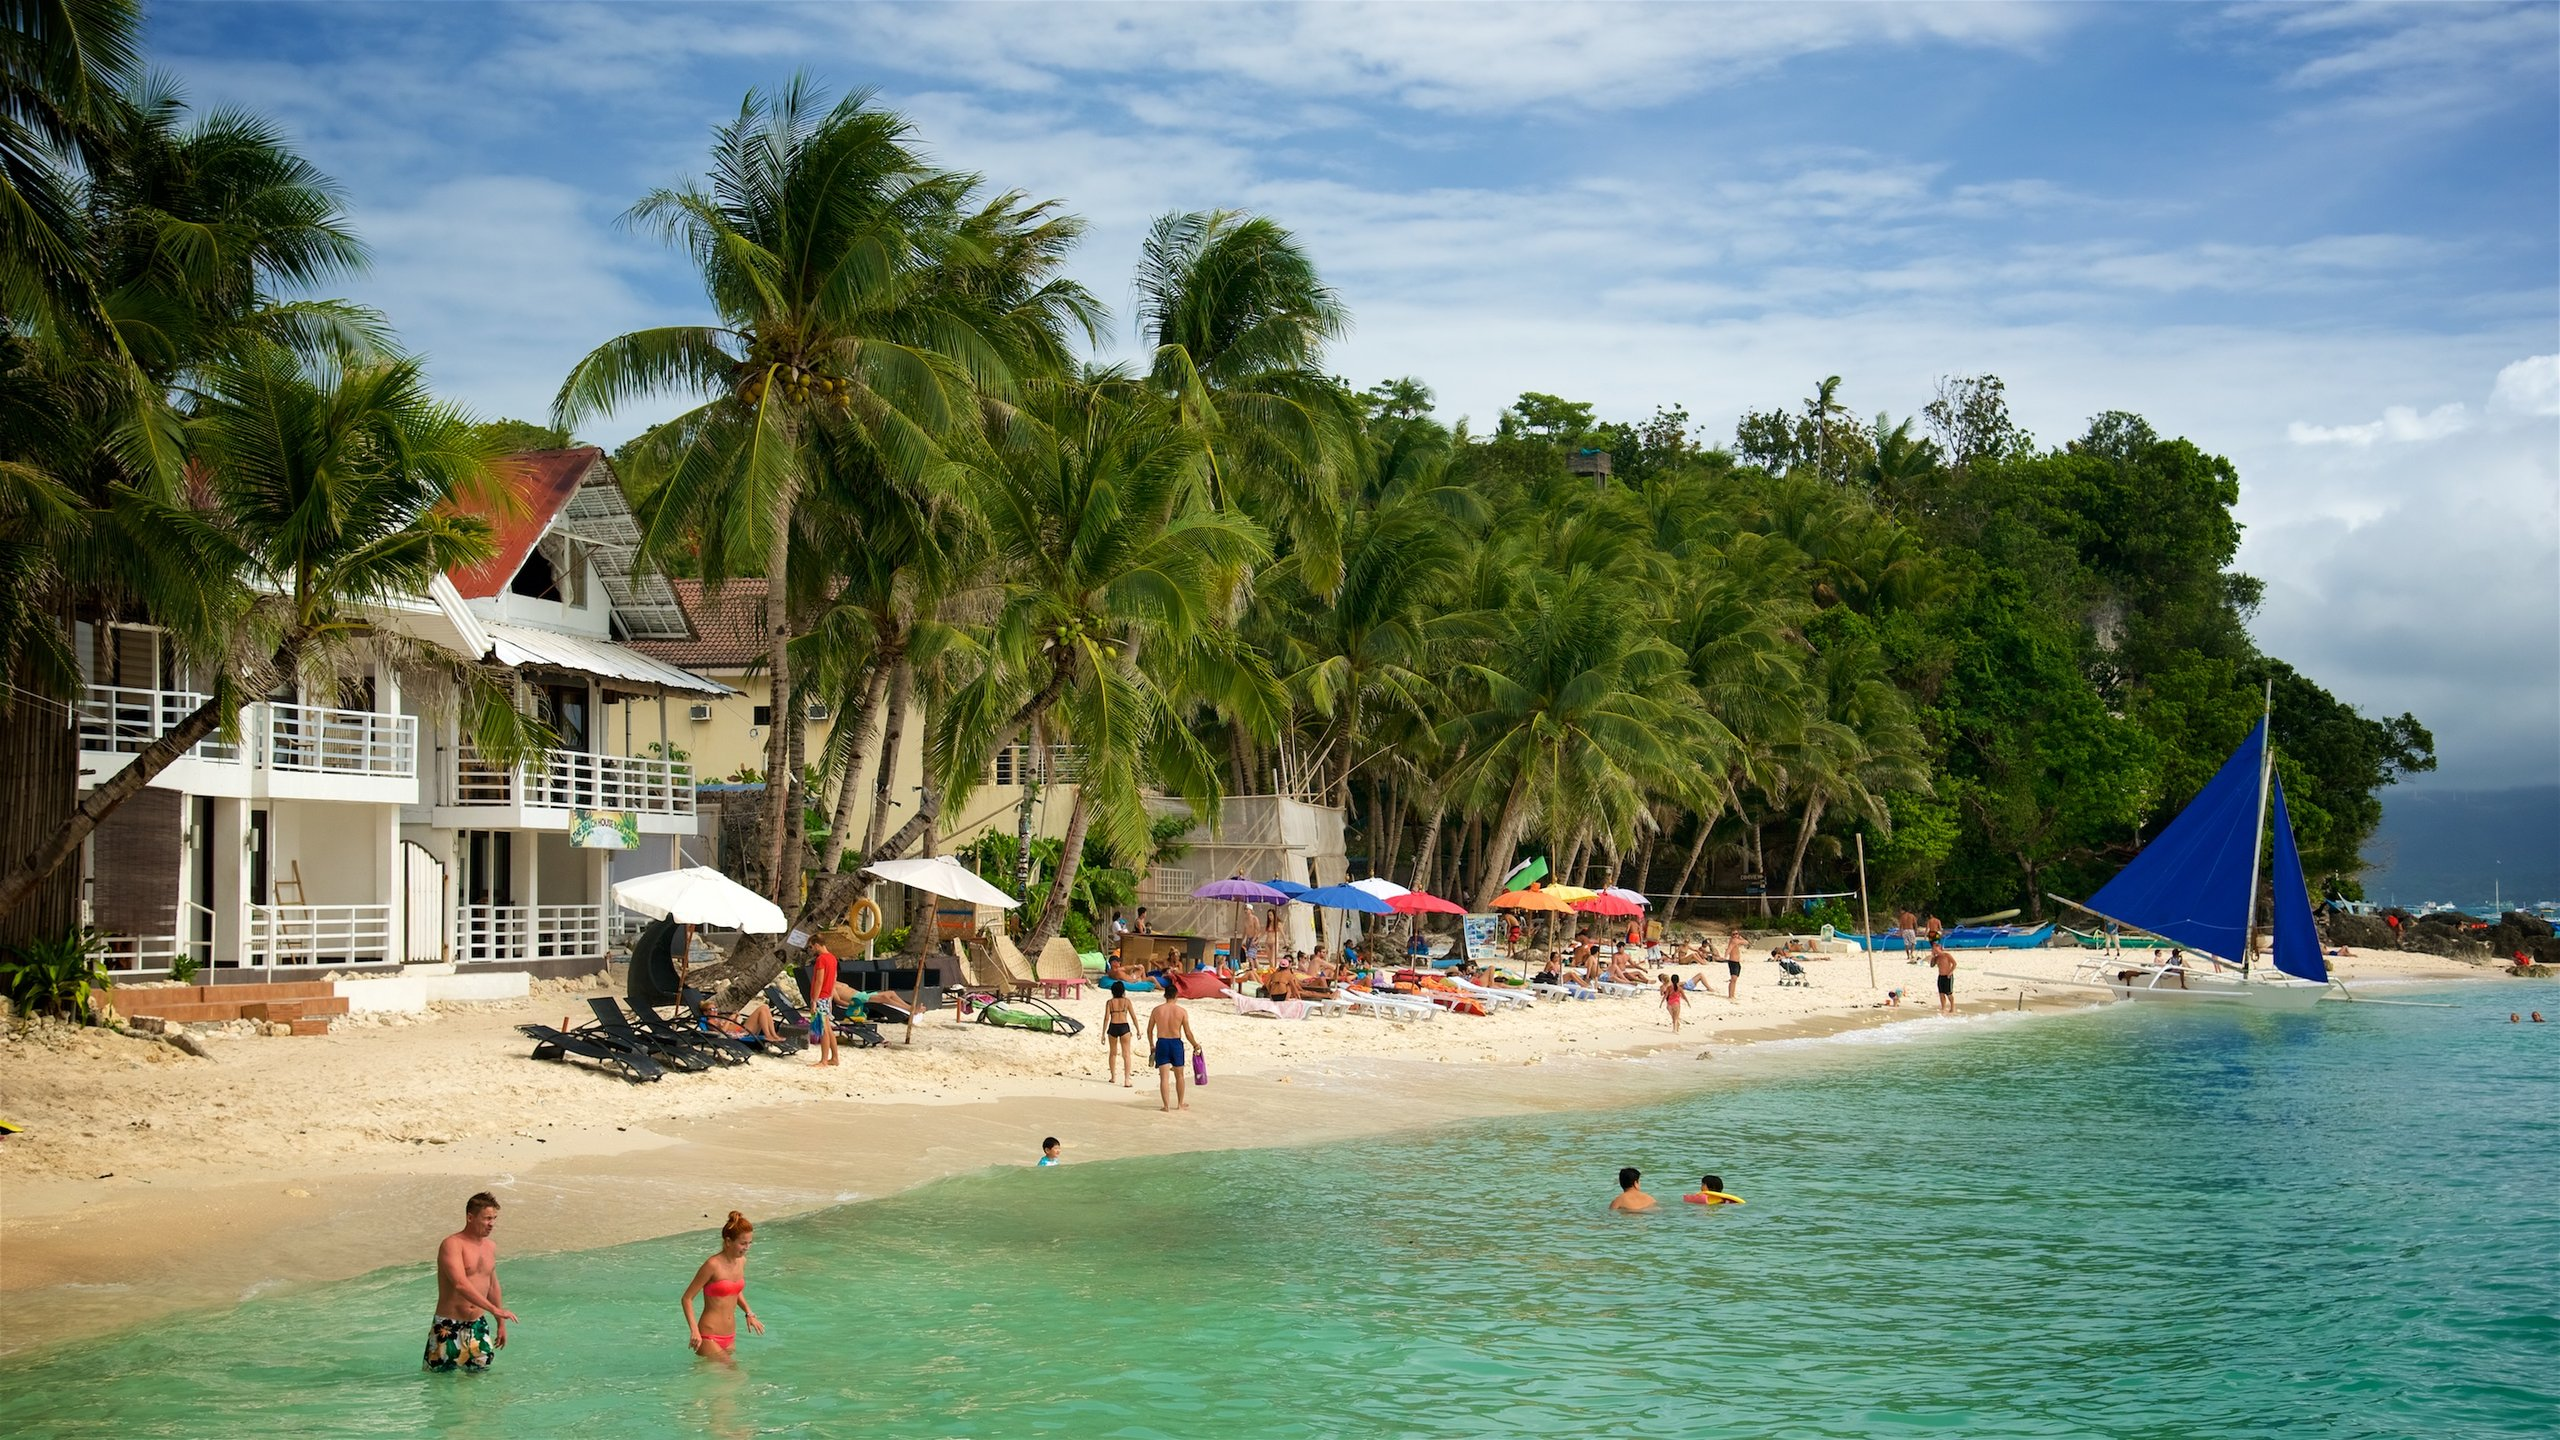 Sink into crystalline water while basking in the scenic beauty at one of the more serene beaches on Boracay island.